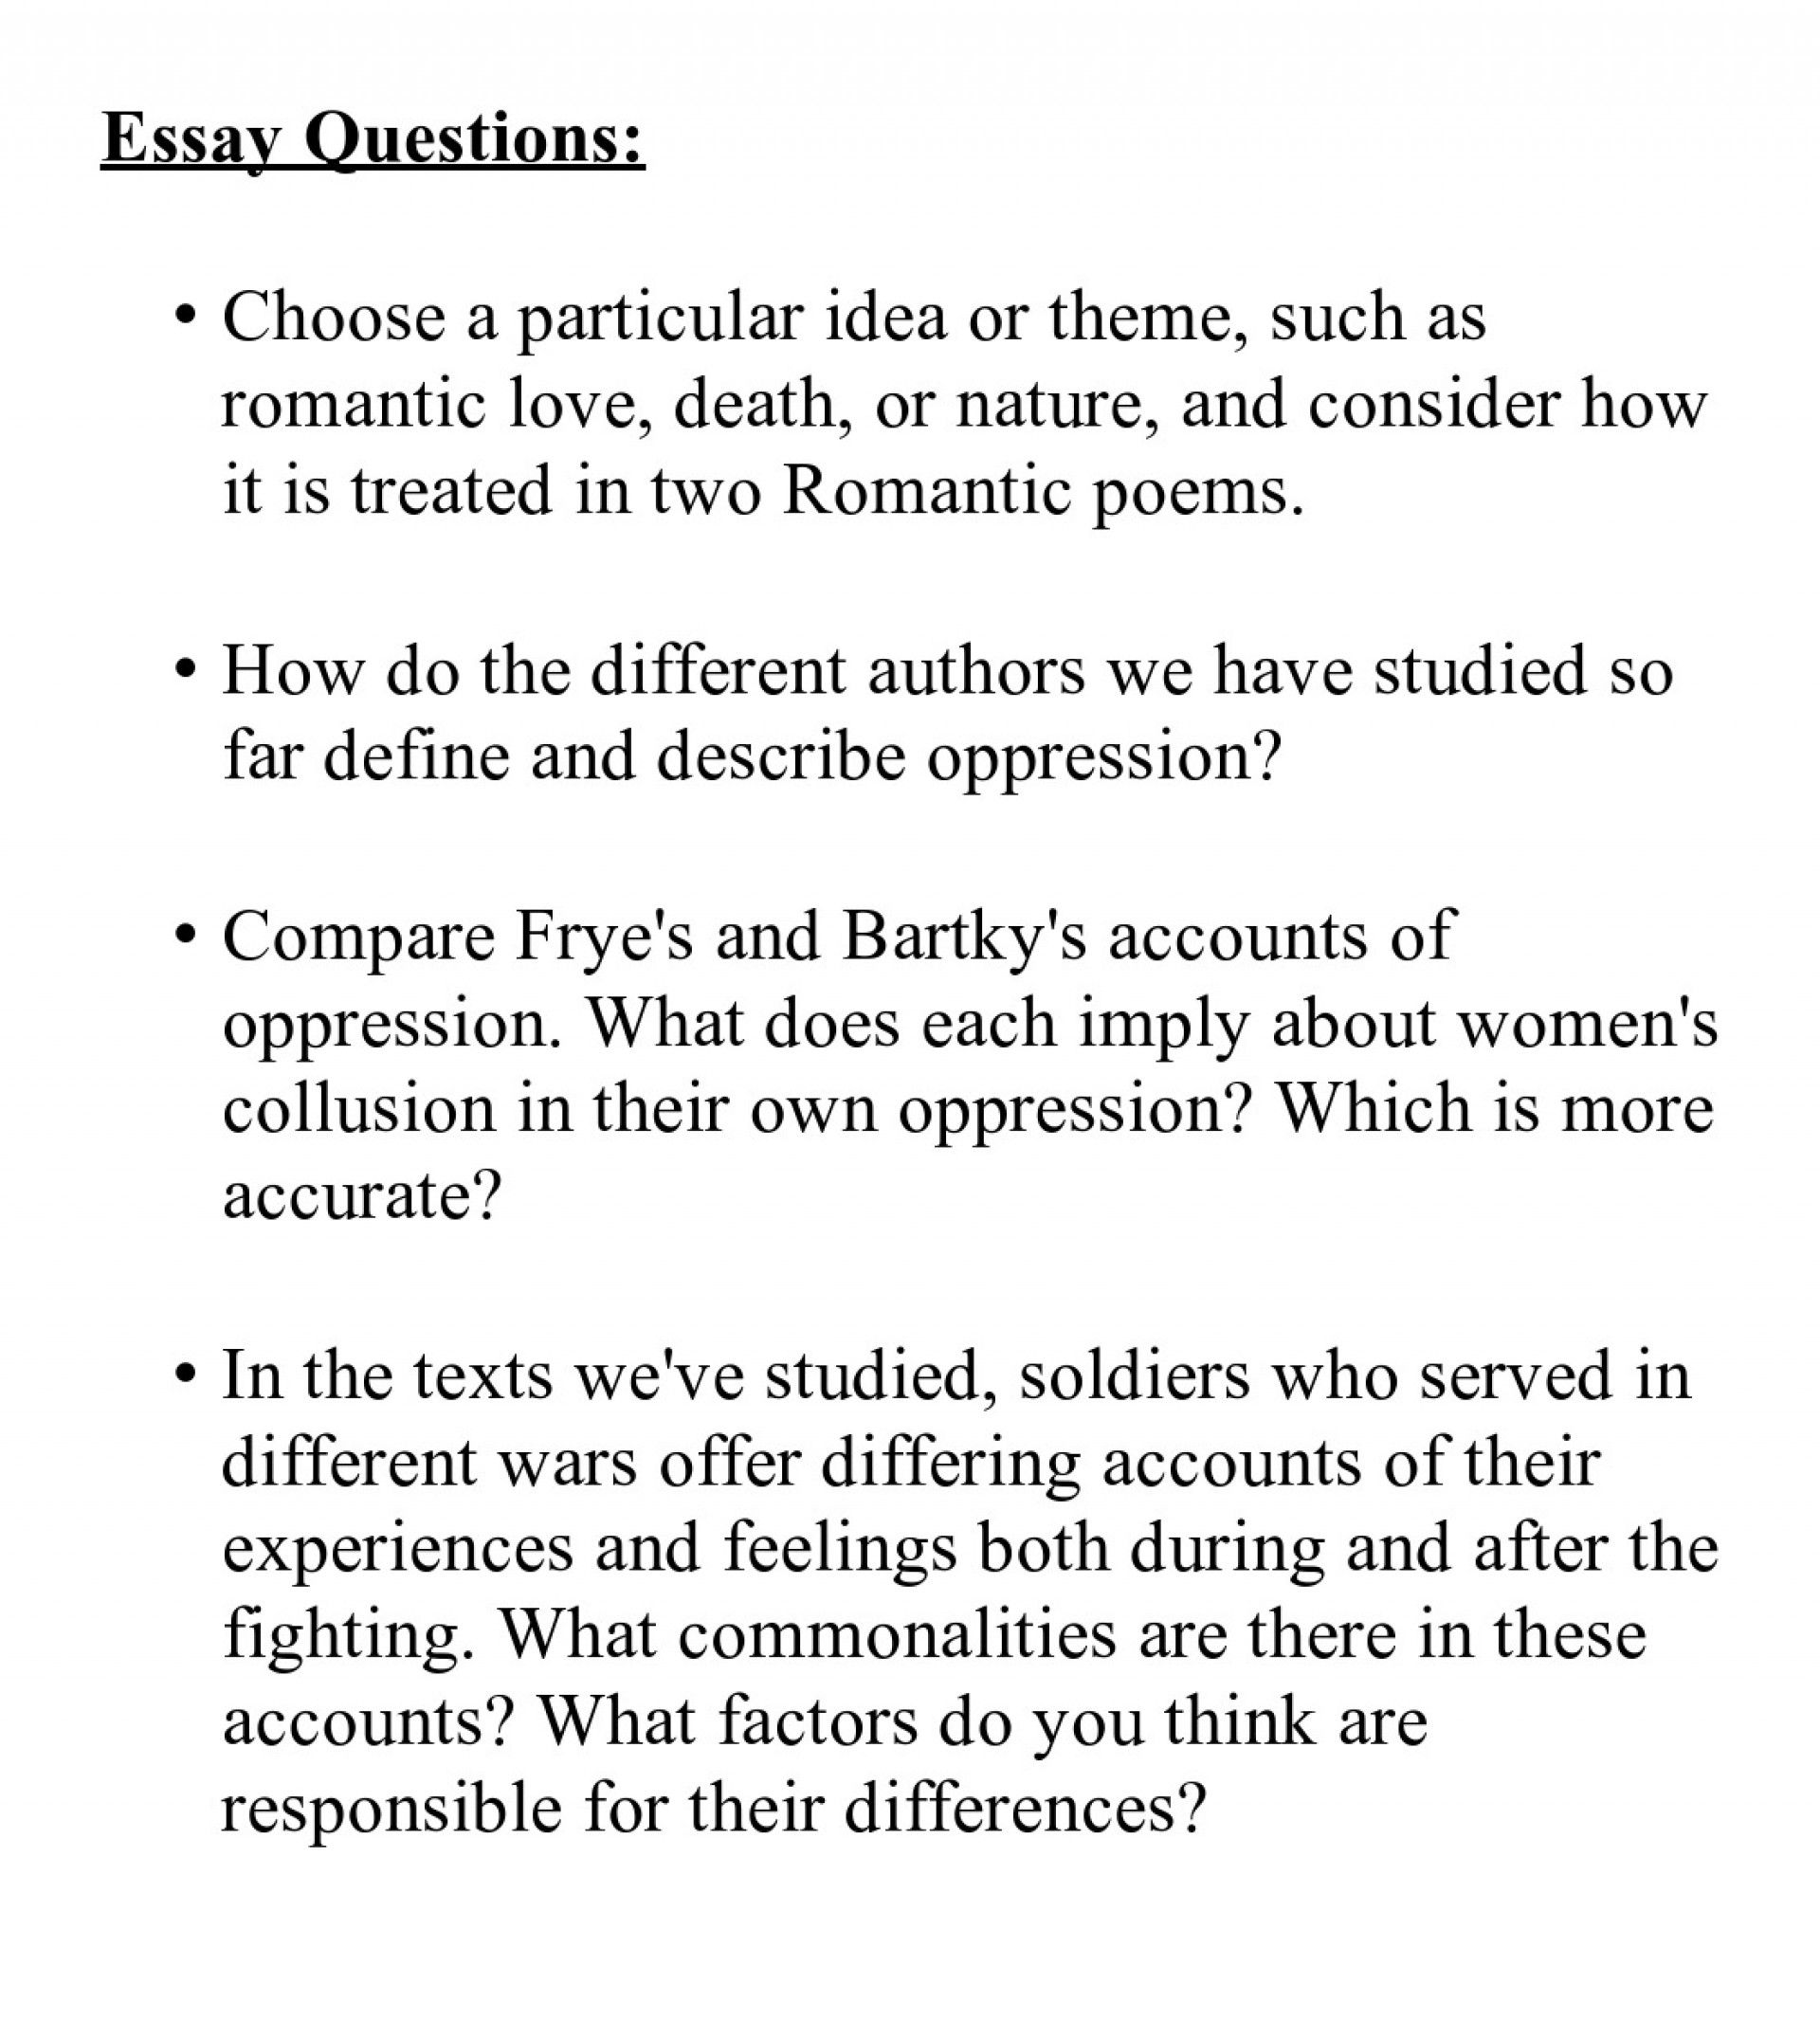 012 Essay Example Questions How To Write An On Fantastic Theme A In Literature The Of Poem Novel 1920